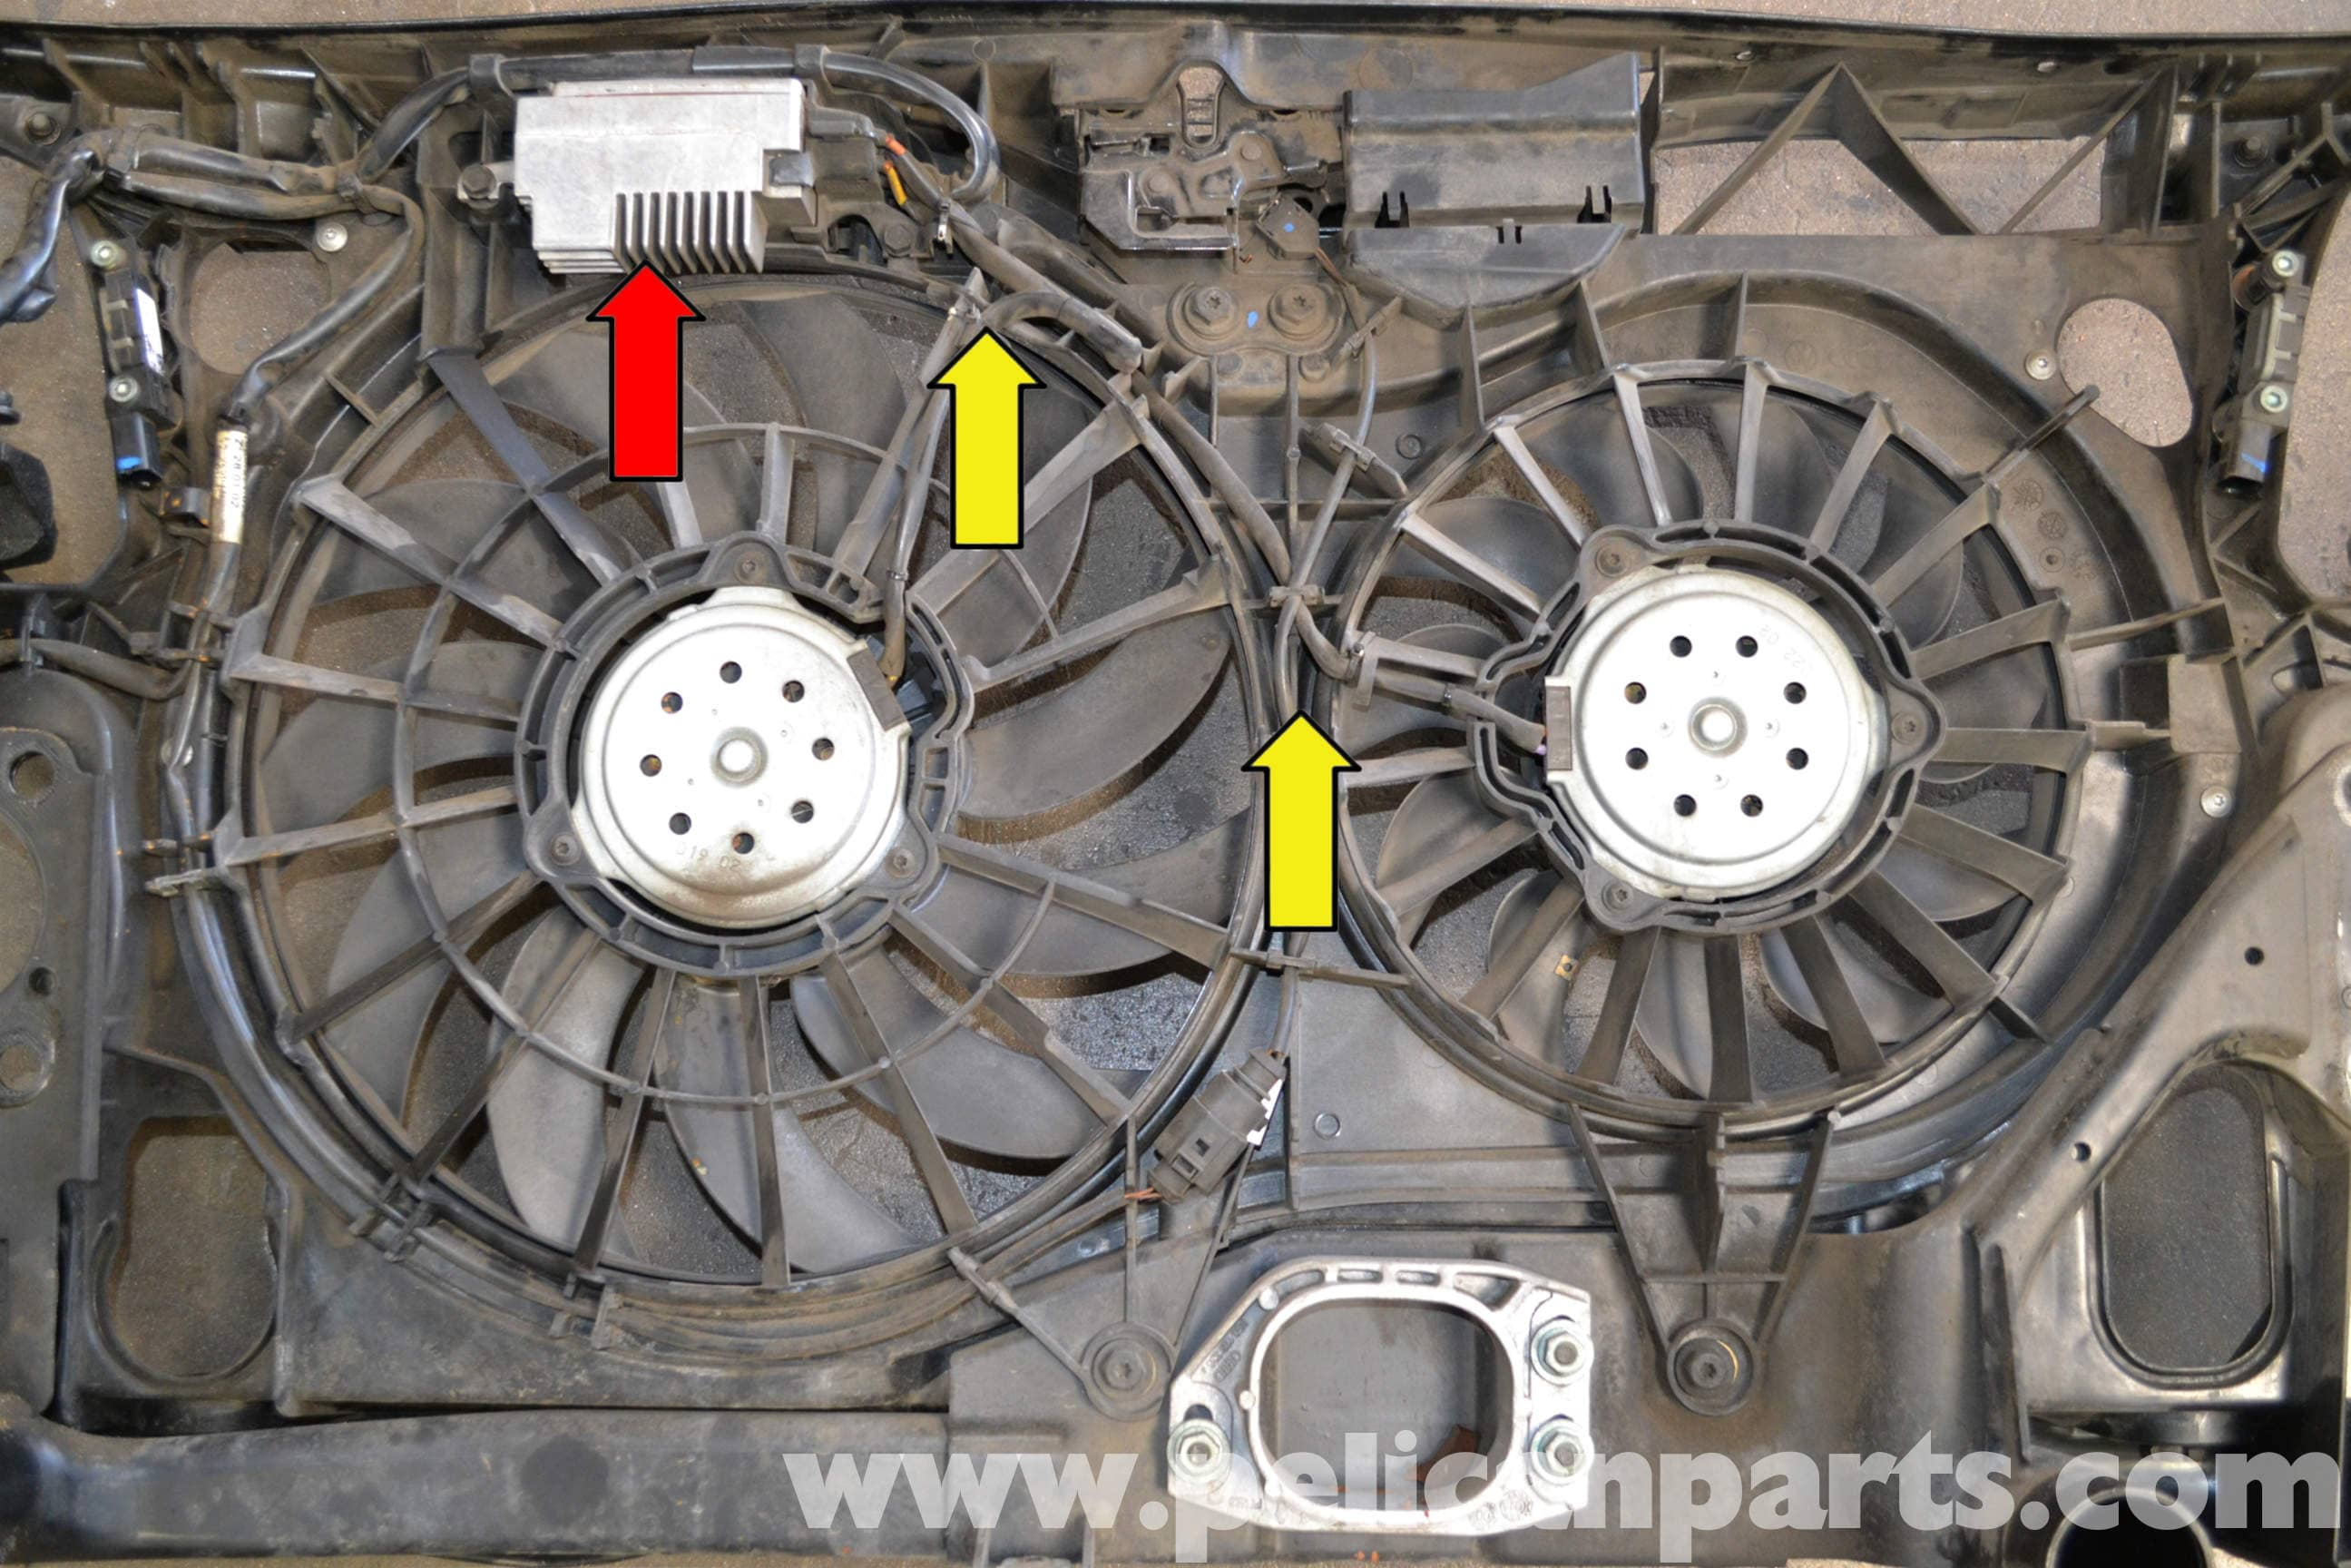 B5 S4 Fuse Diagram Audi A4 B6 Fan And Shroud Replacement 2002 2008